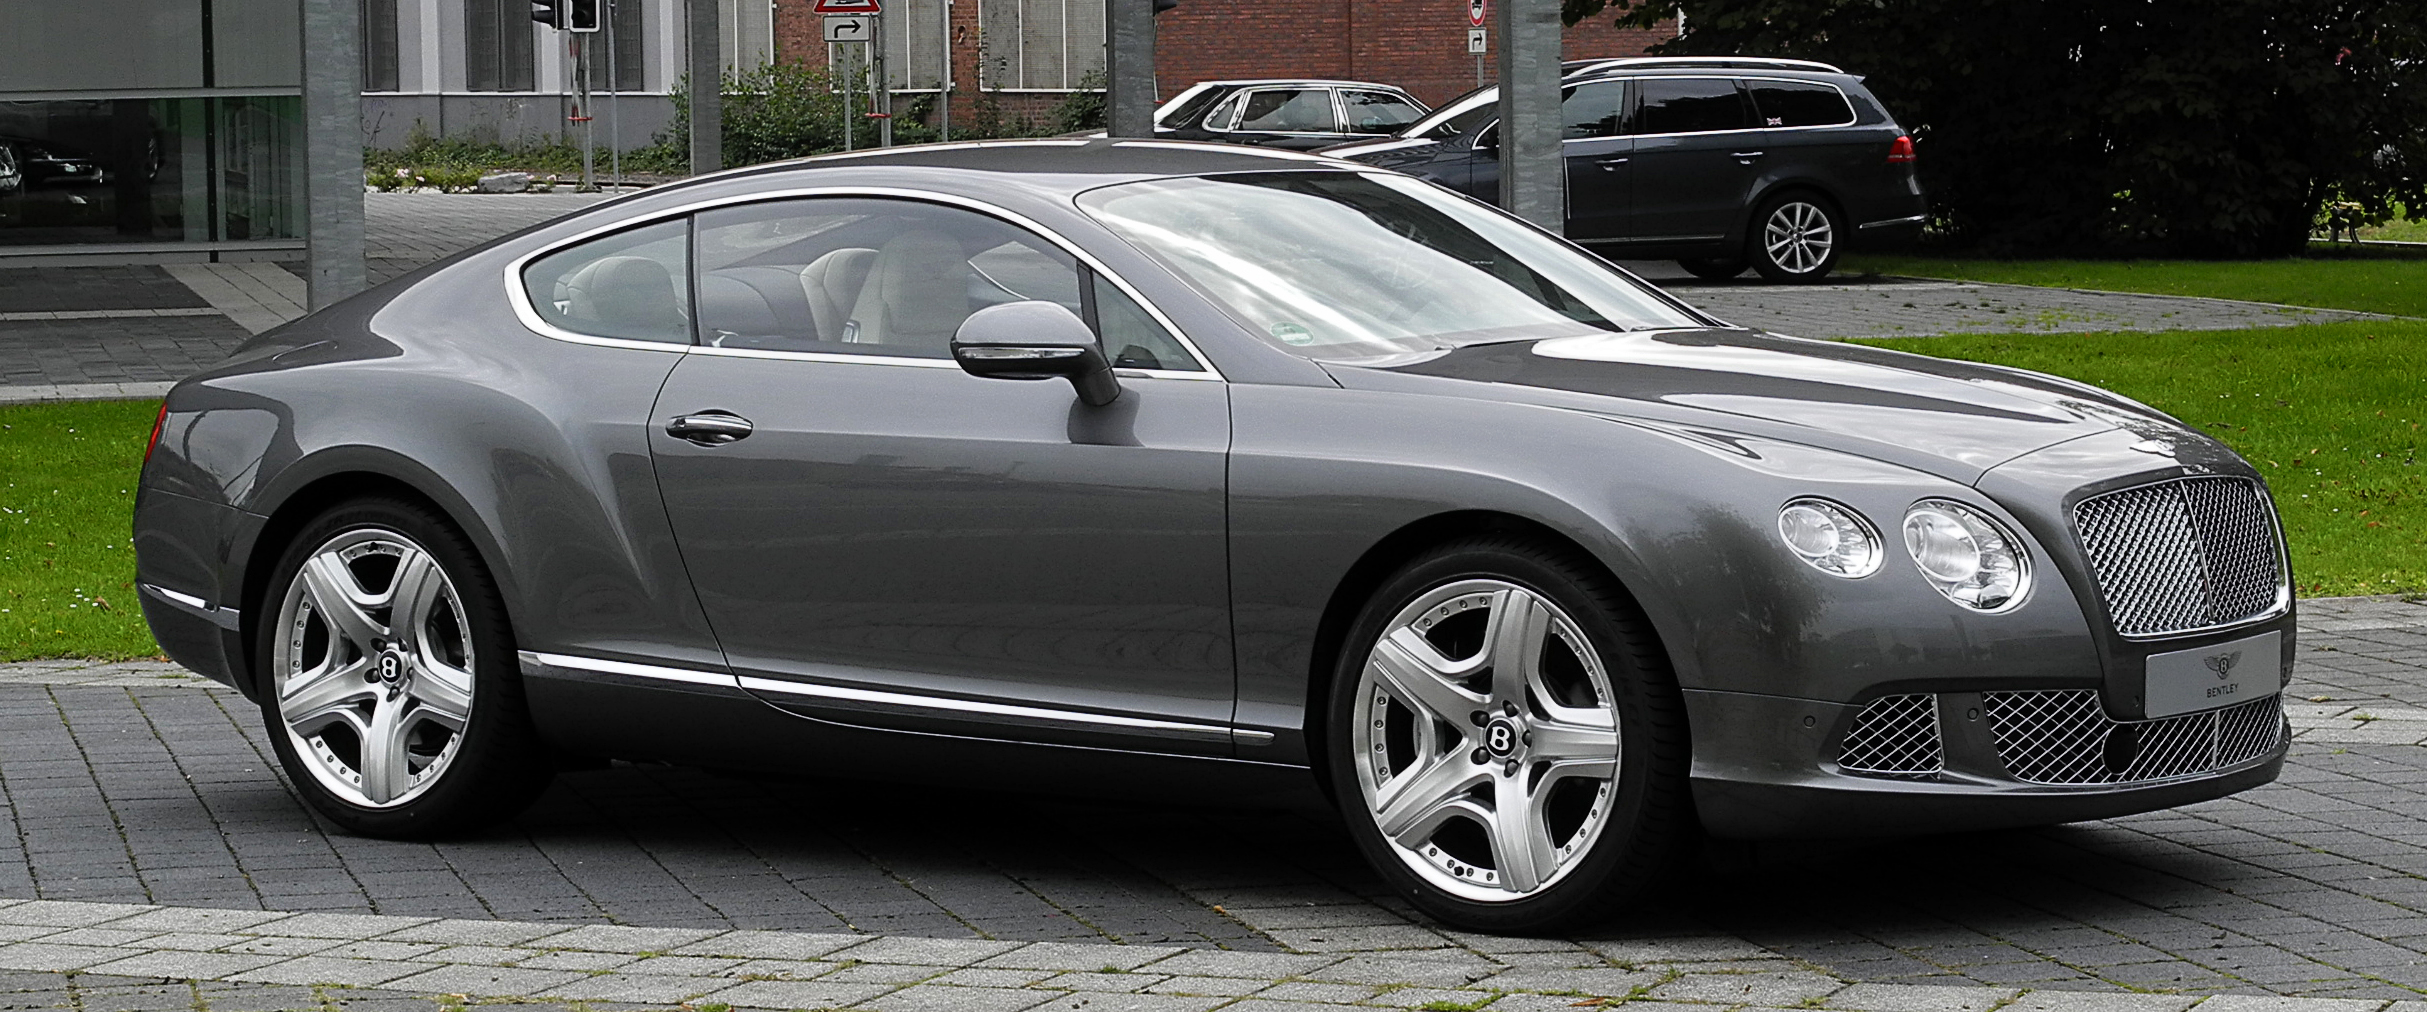 file bentley continental gt ii frontansicht 6 30 august 2011 rh commons wikimedia org